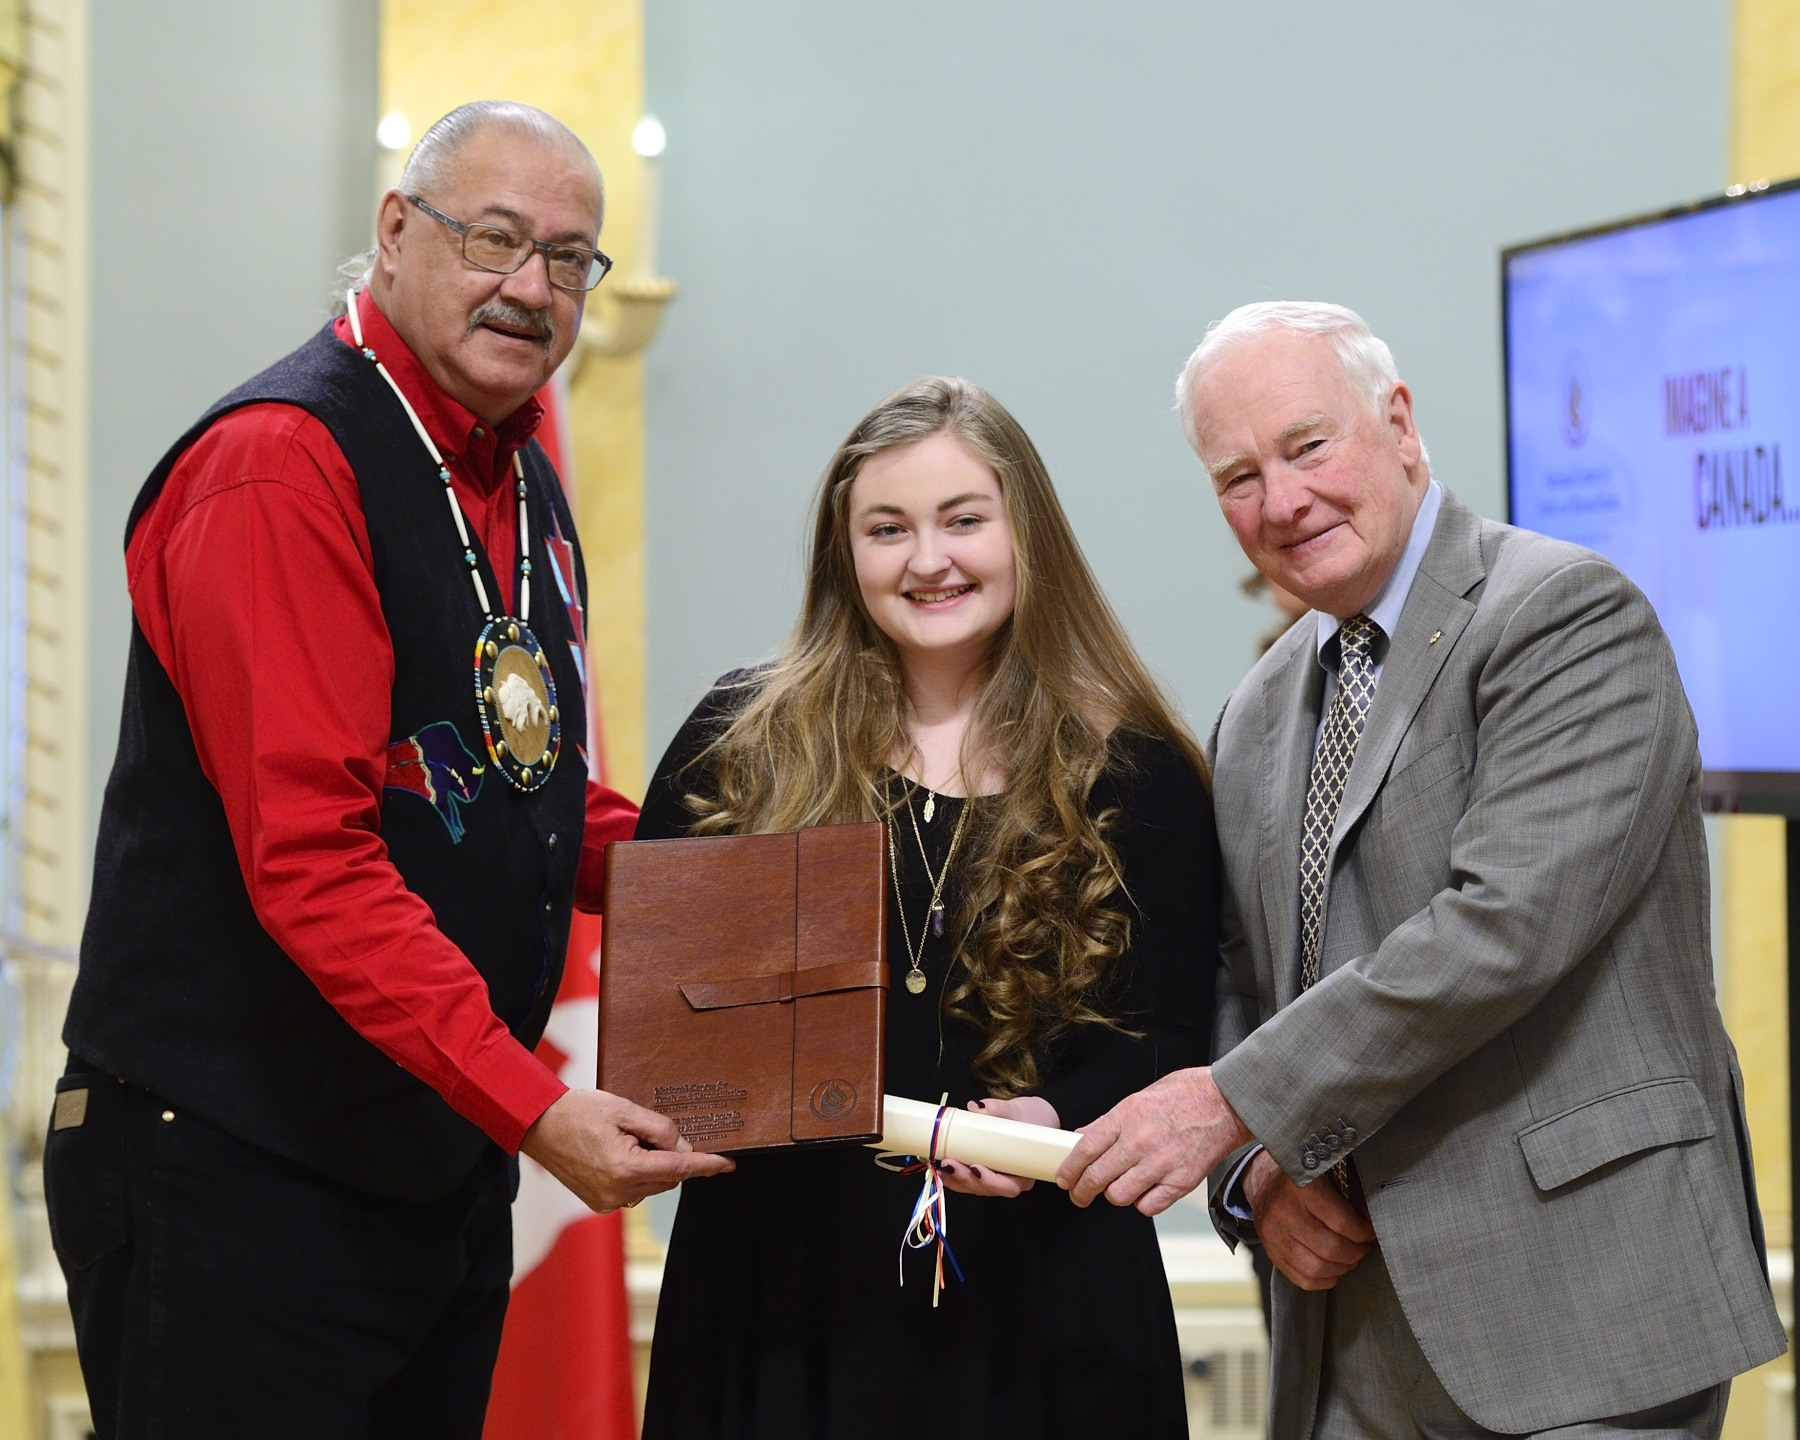 Hailing from Vancouver Island, Madeleine Morrison, a grade 9 student, was recognized for a poem she wrote.